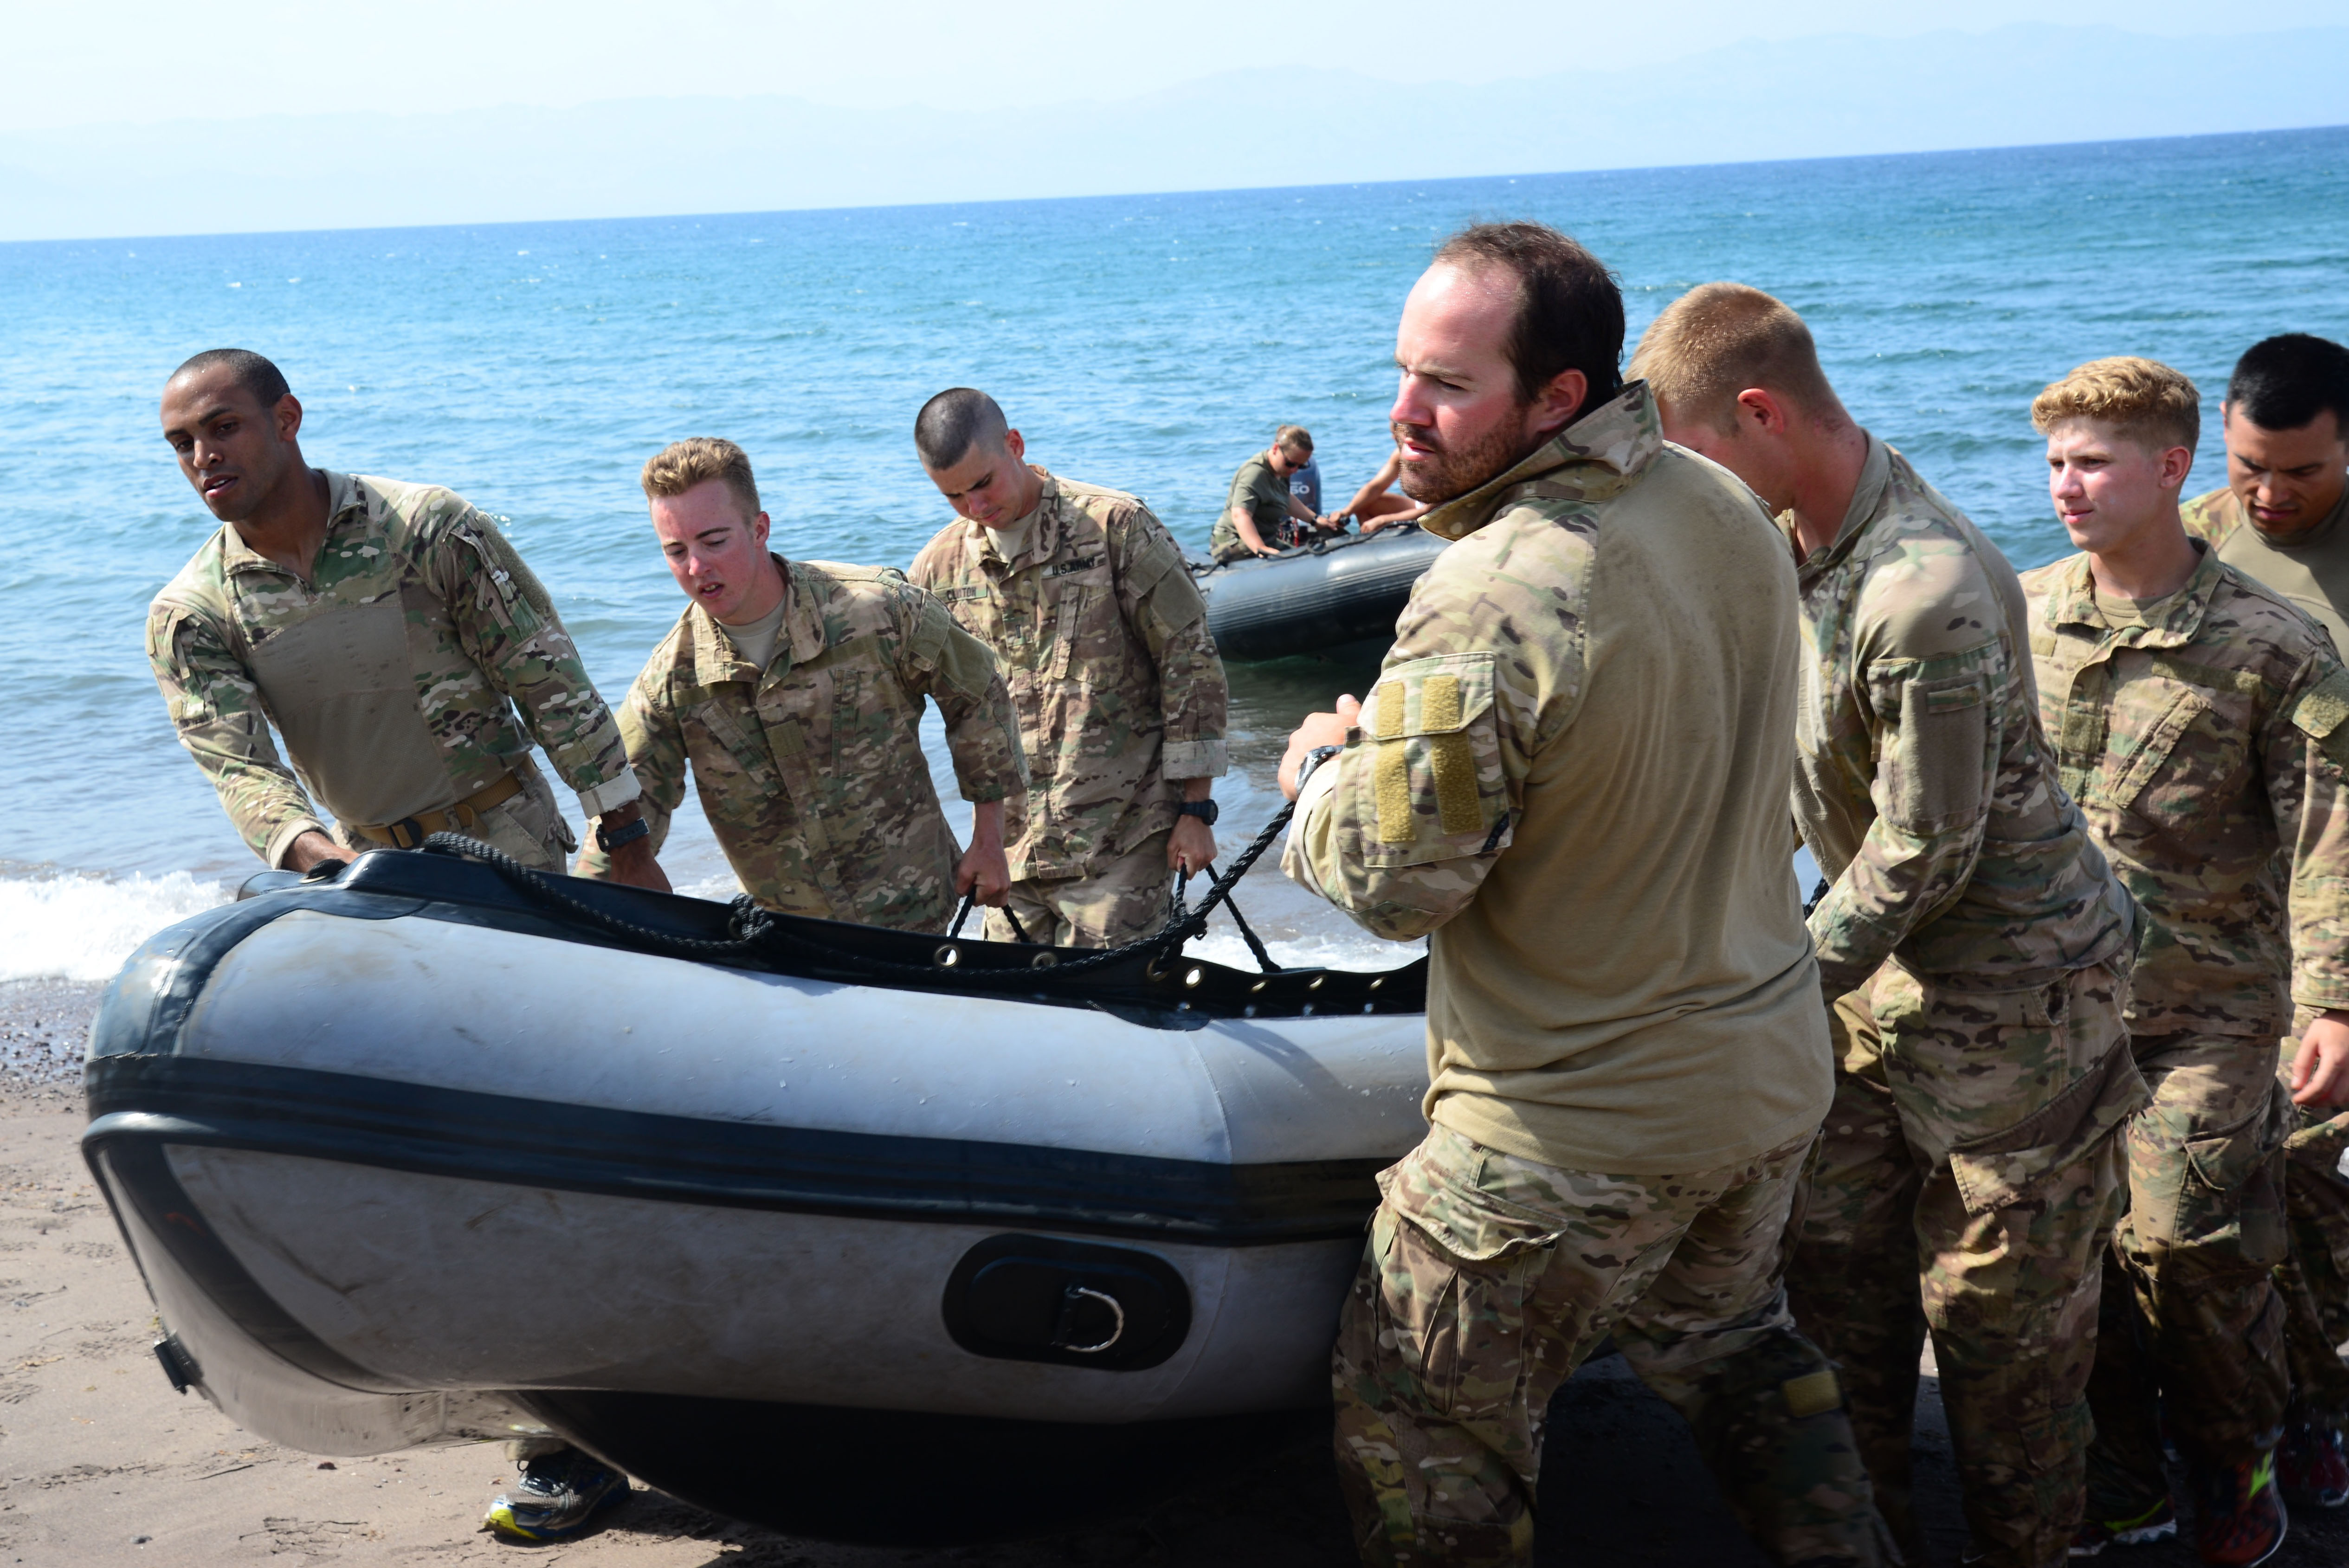 U.S. Army soldiers from the 2nd Battalion, 124th Infantry Regiment, carry a zodiac watercraft across a beach during a water crossing exercise May 5, 2016, at Arta Plage, Djibouti. The soldiers were required to run the watercraft across a beach, paddle to a drowning victim,  and run back and run back to the starting point. (U.S. Air Force photo by Senior Airman Benjamin Raughton/Released)